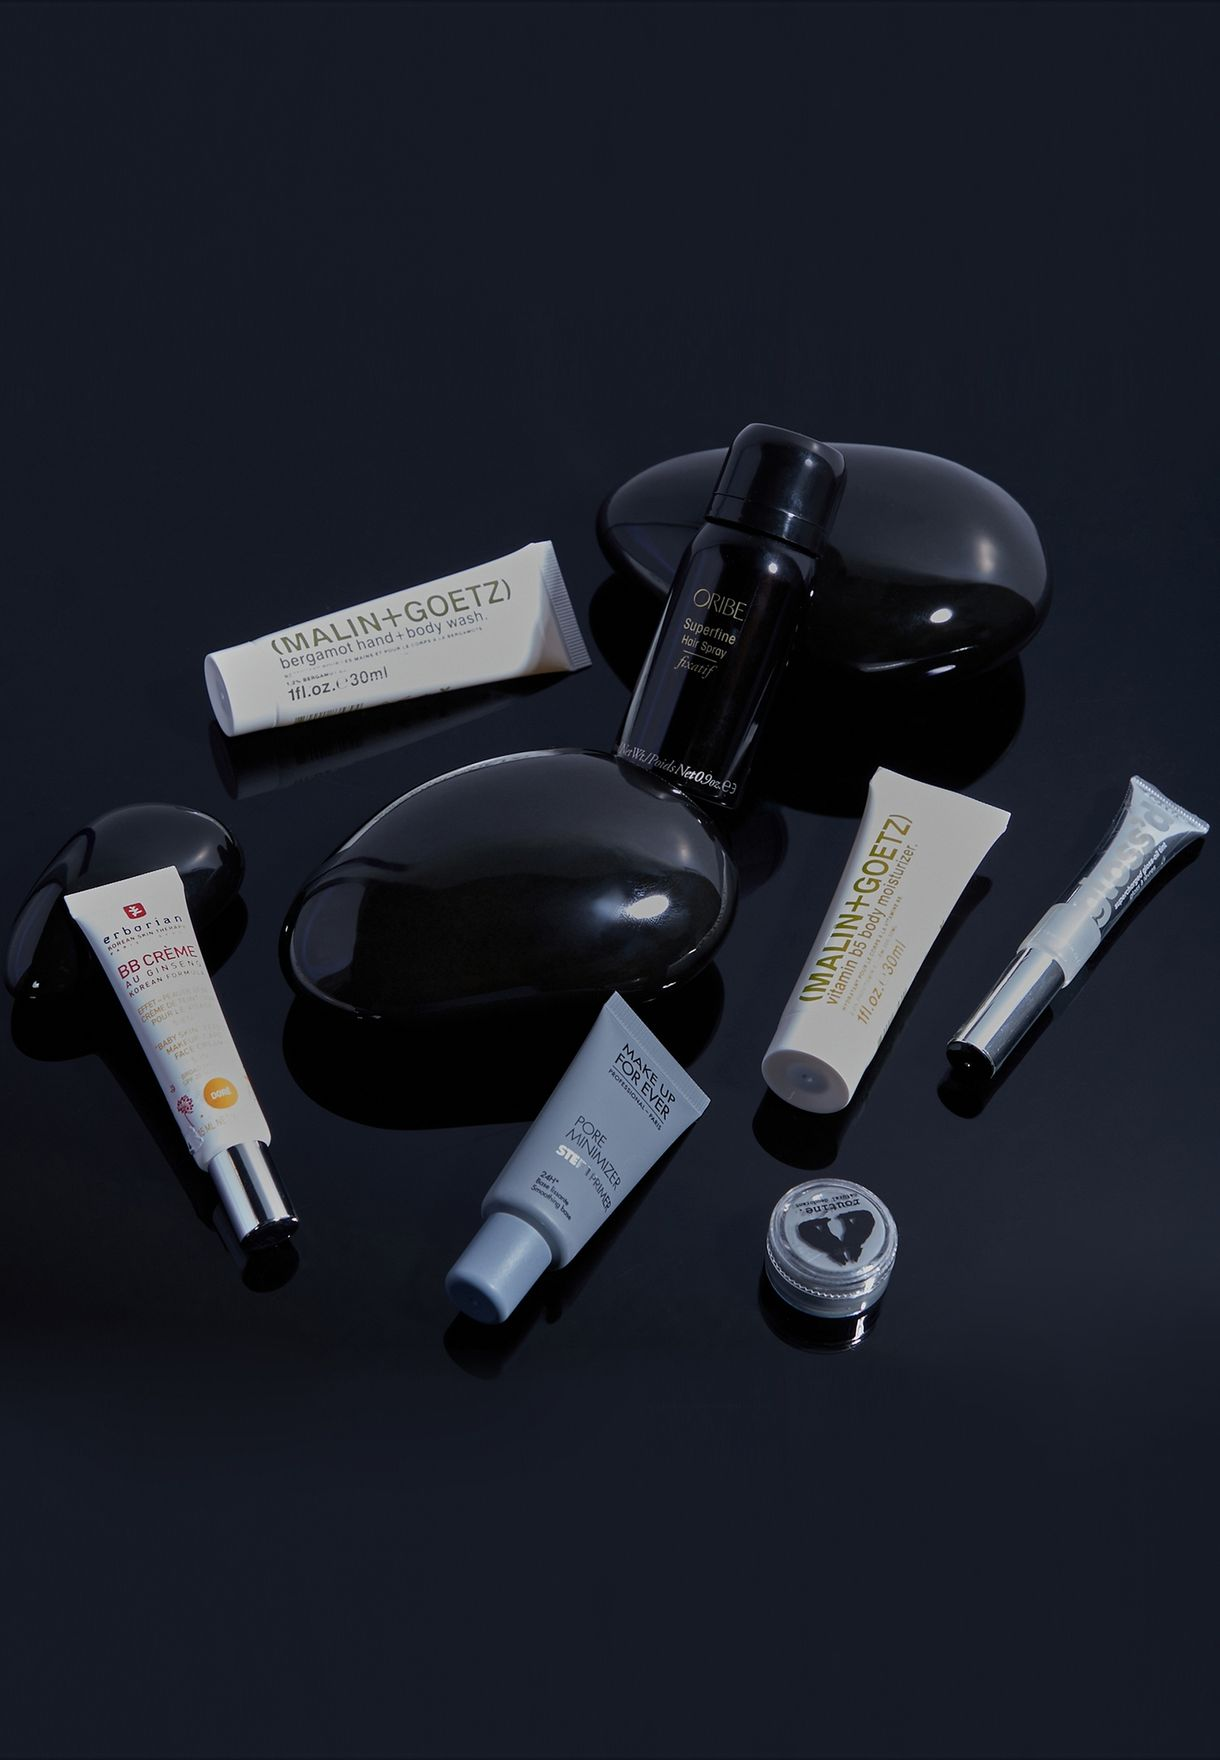 The Countdown To Eid Box 30 Beauty Must-Haves Worth 1390Aed/Sar